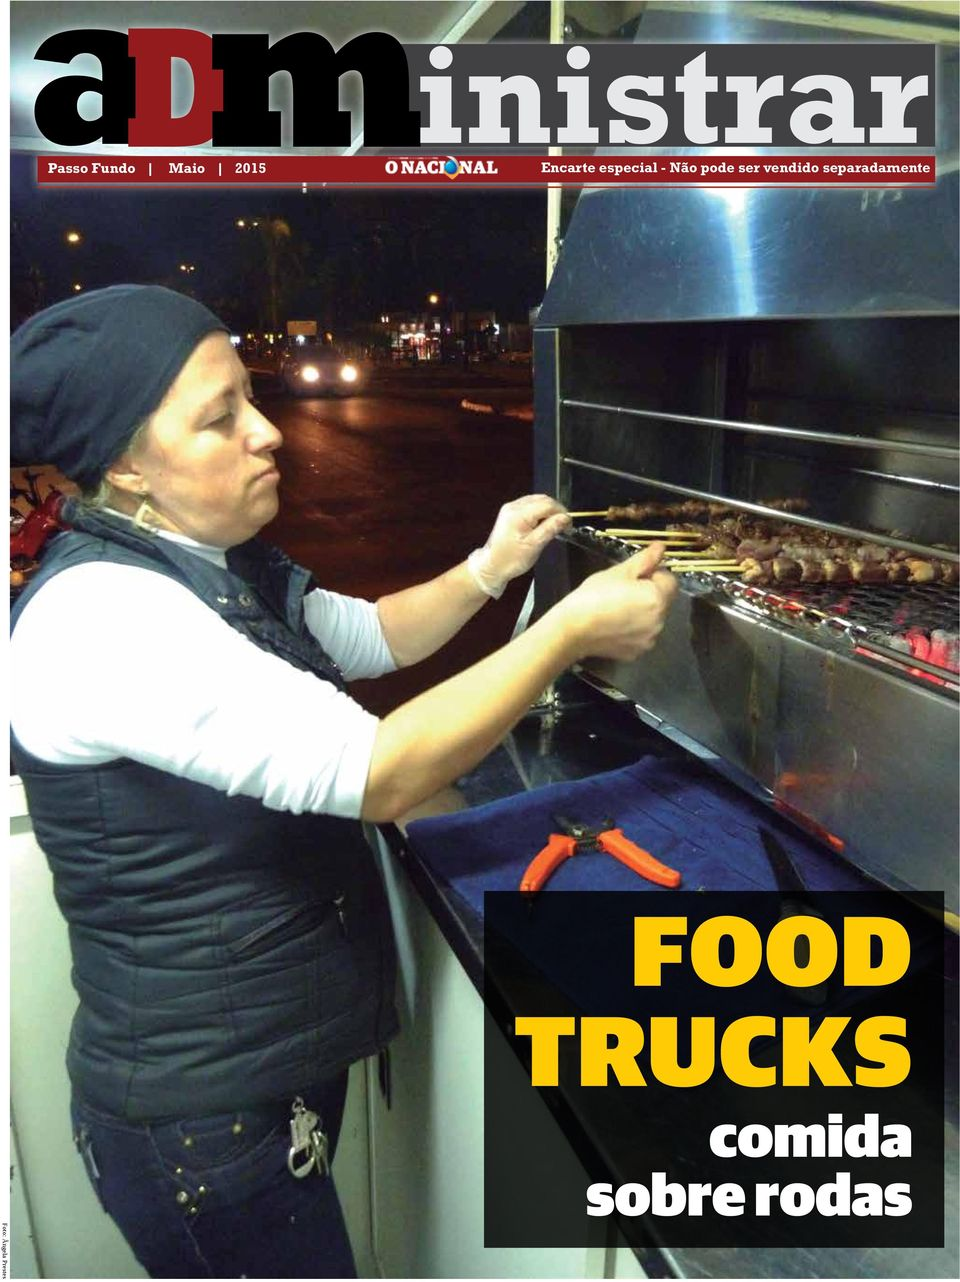 vendido separadamente Food Trucks